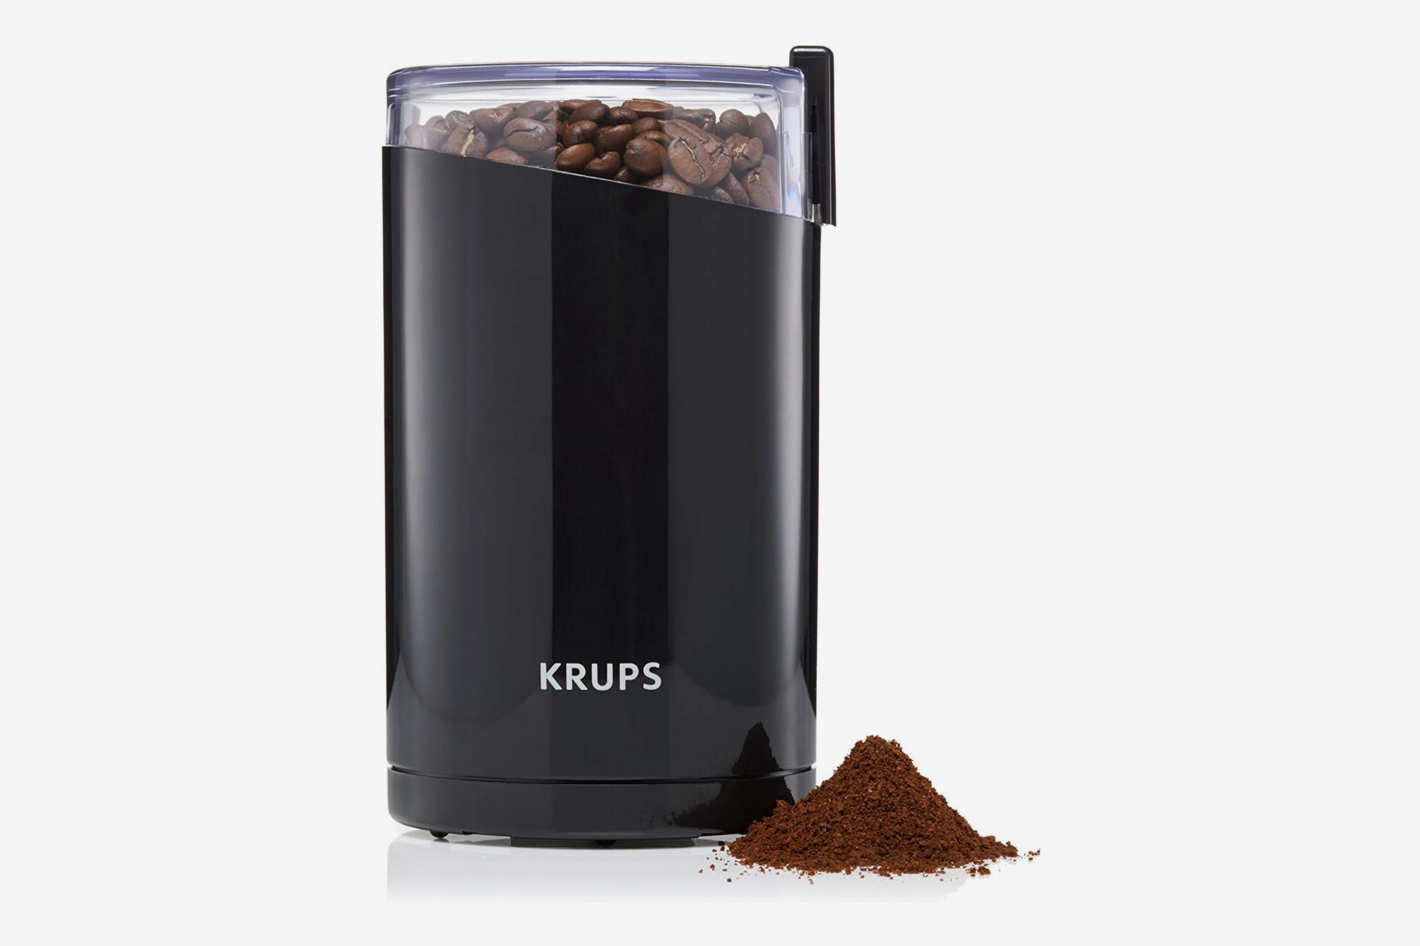 KRUPS Electric Spice and Coffee Grinder with Stainless Steel Blades